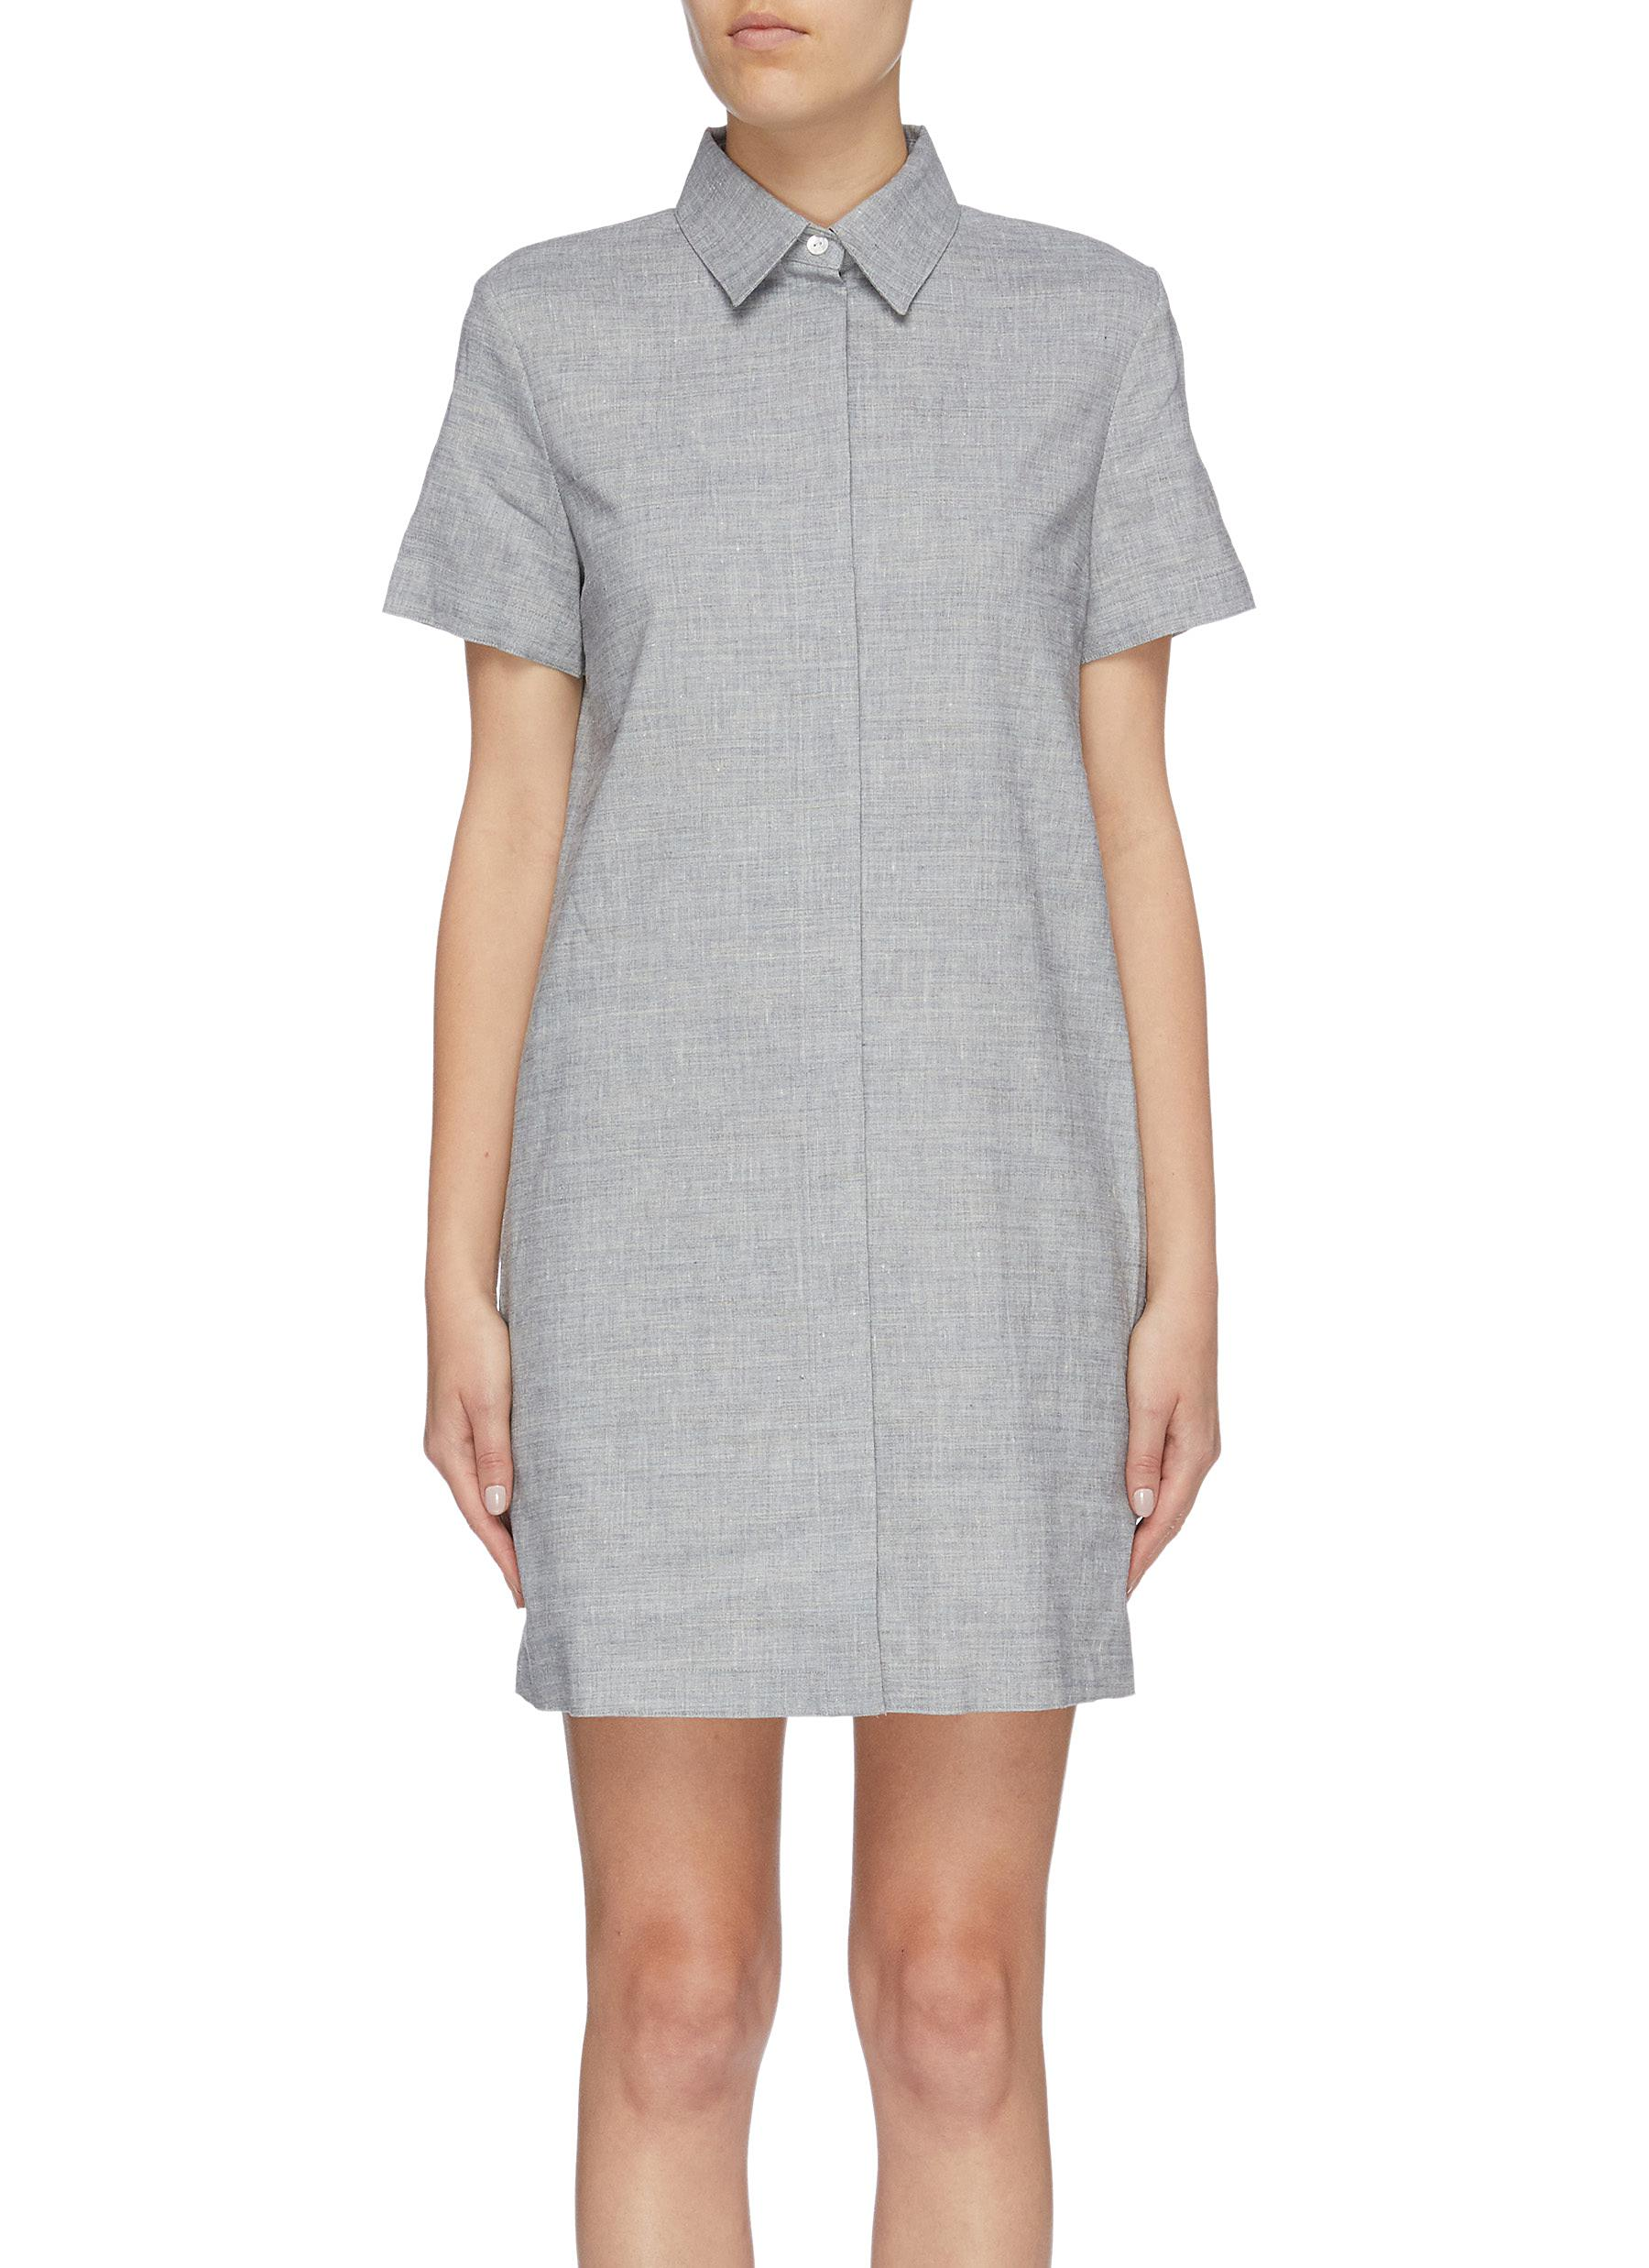 Linen blend shirt dress by Theory